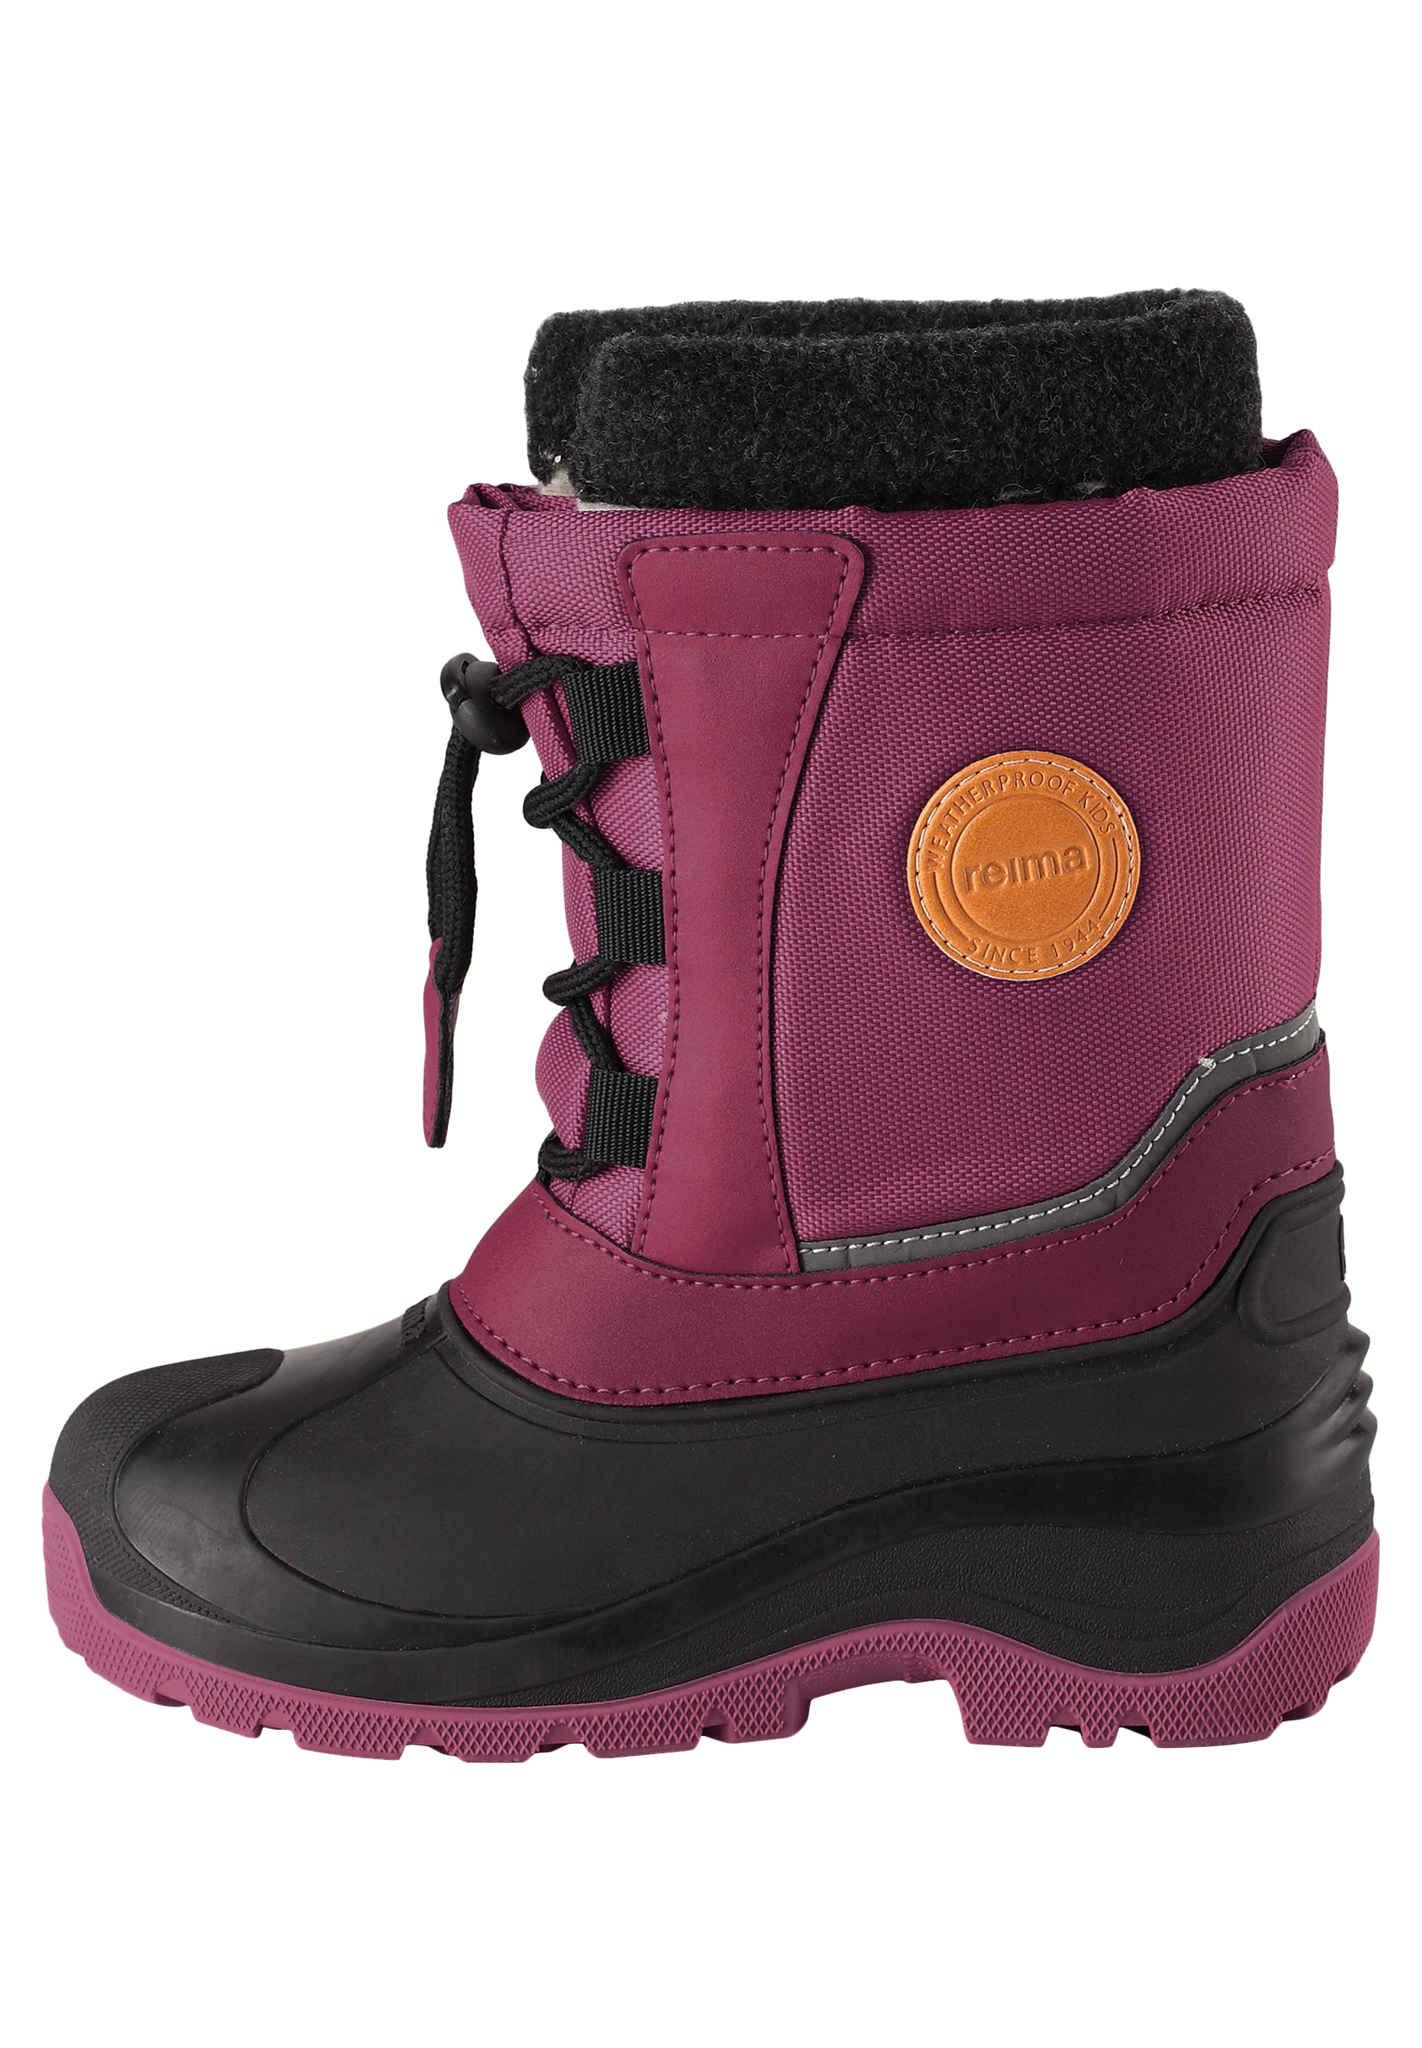 Kids' winter boots Yura | Reima International